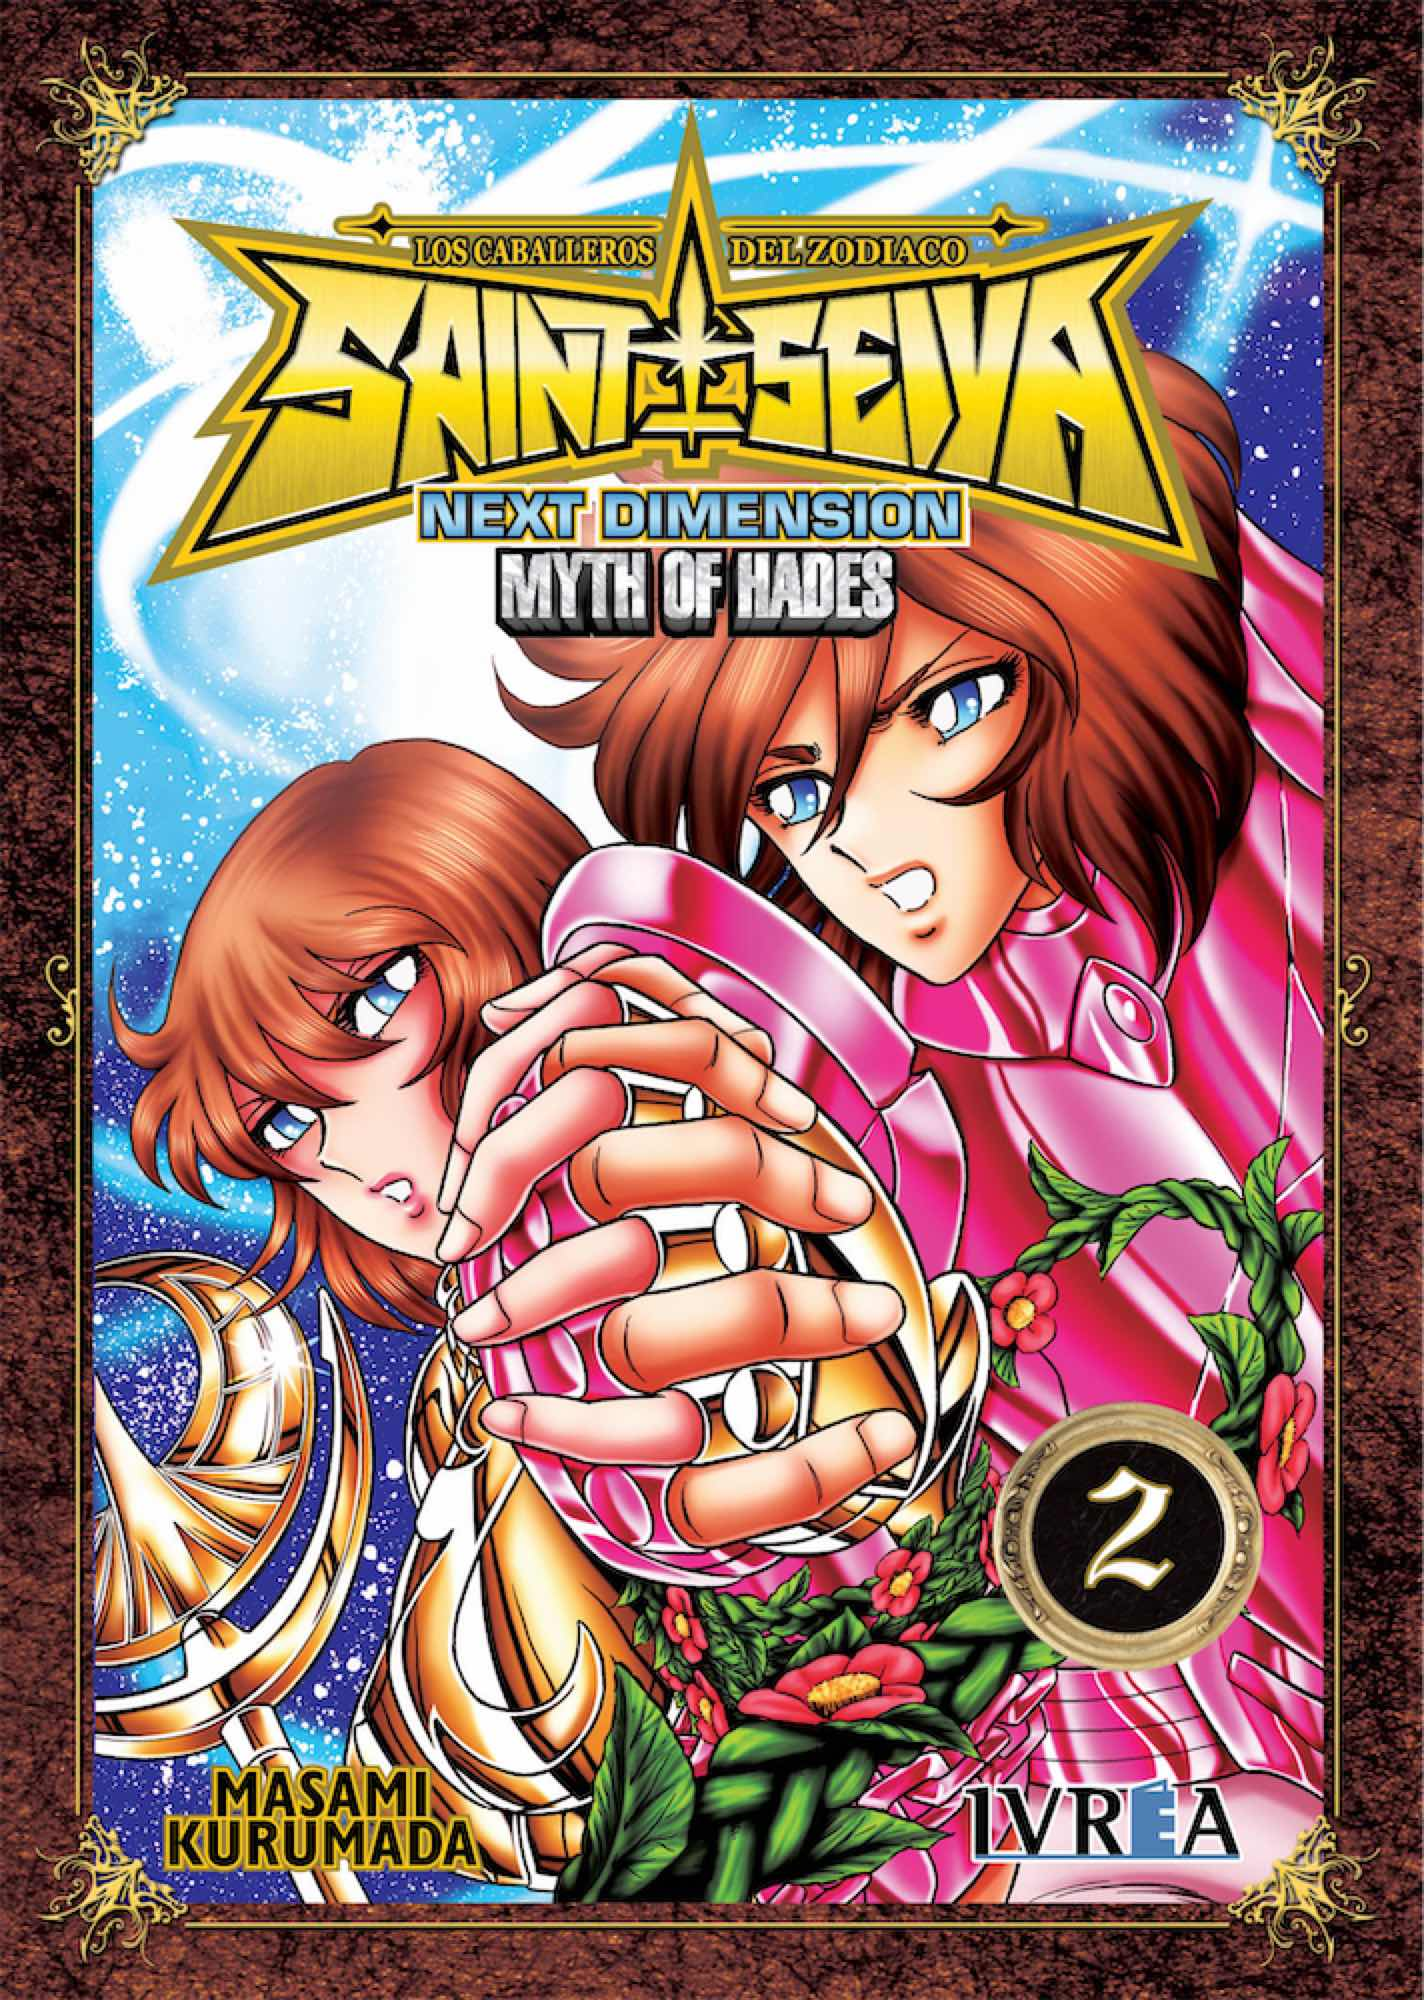 SAINT SEIYA. NEXT DIMENSION MYTH OF HADES 02 (COMIC)